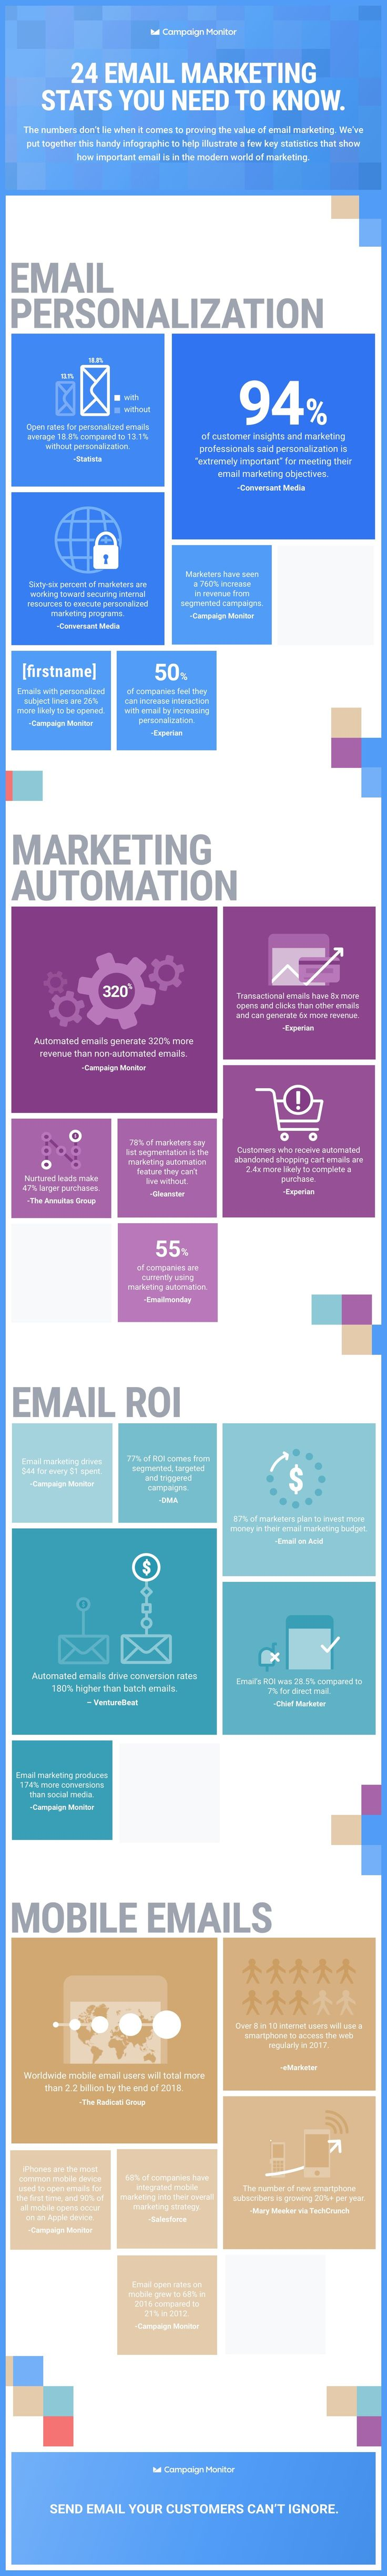 24 Email Marketing Stats You Need to Know - #infographic